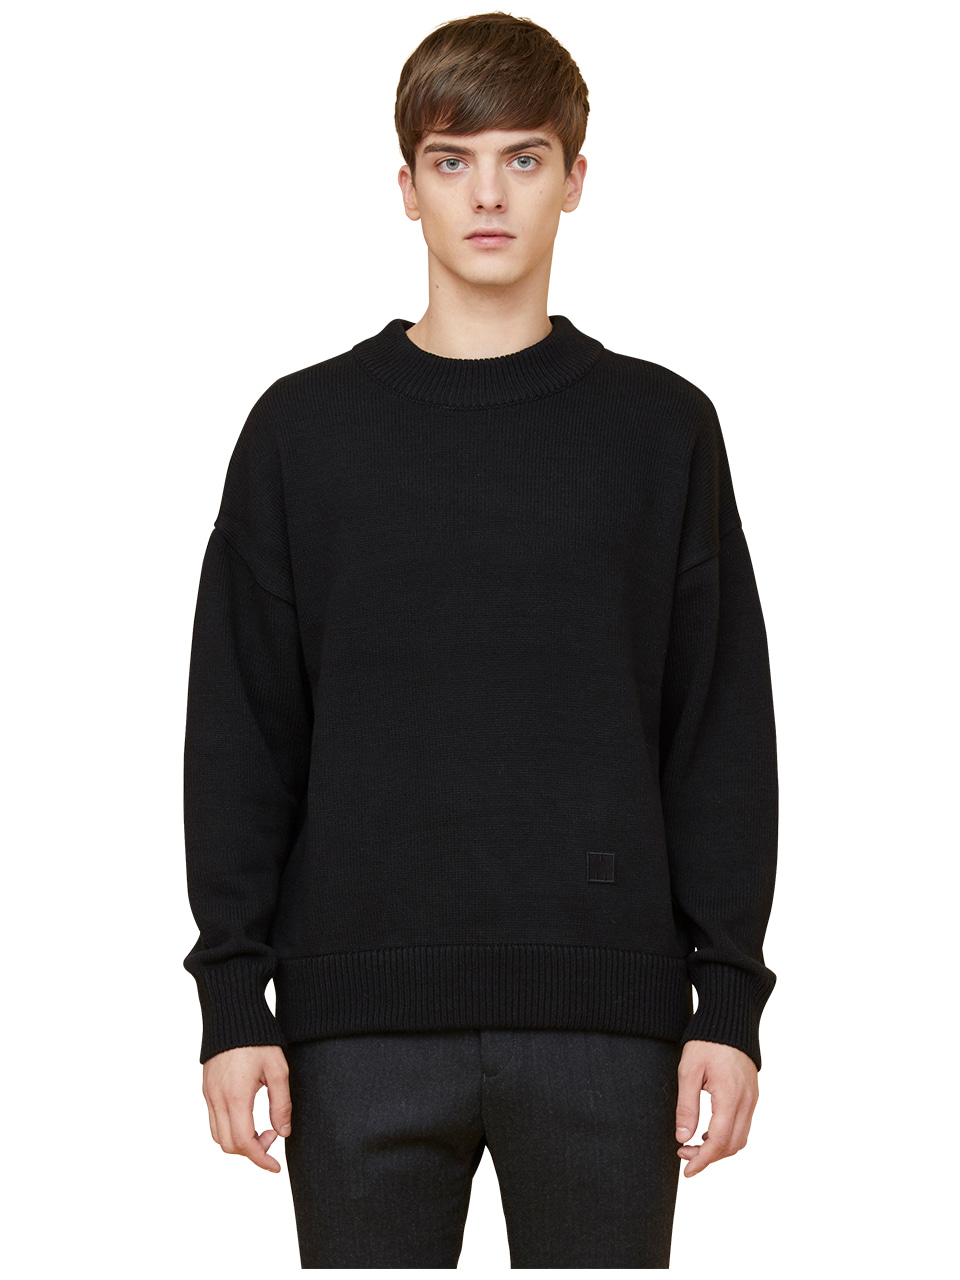 snuggle sweater - black